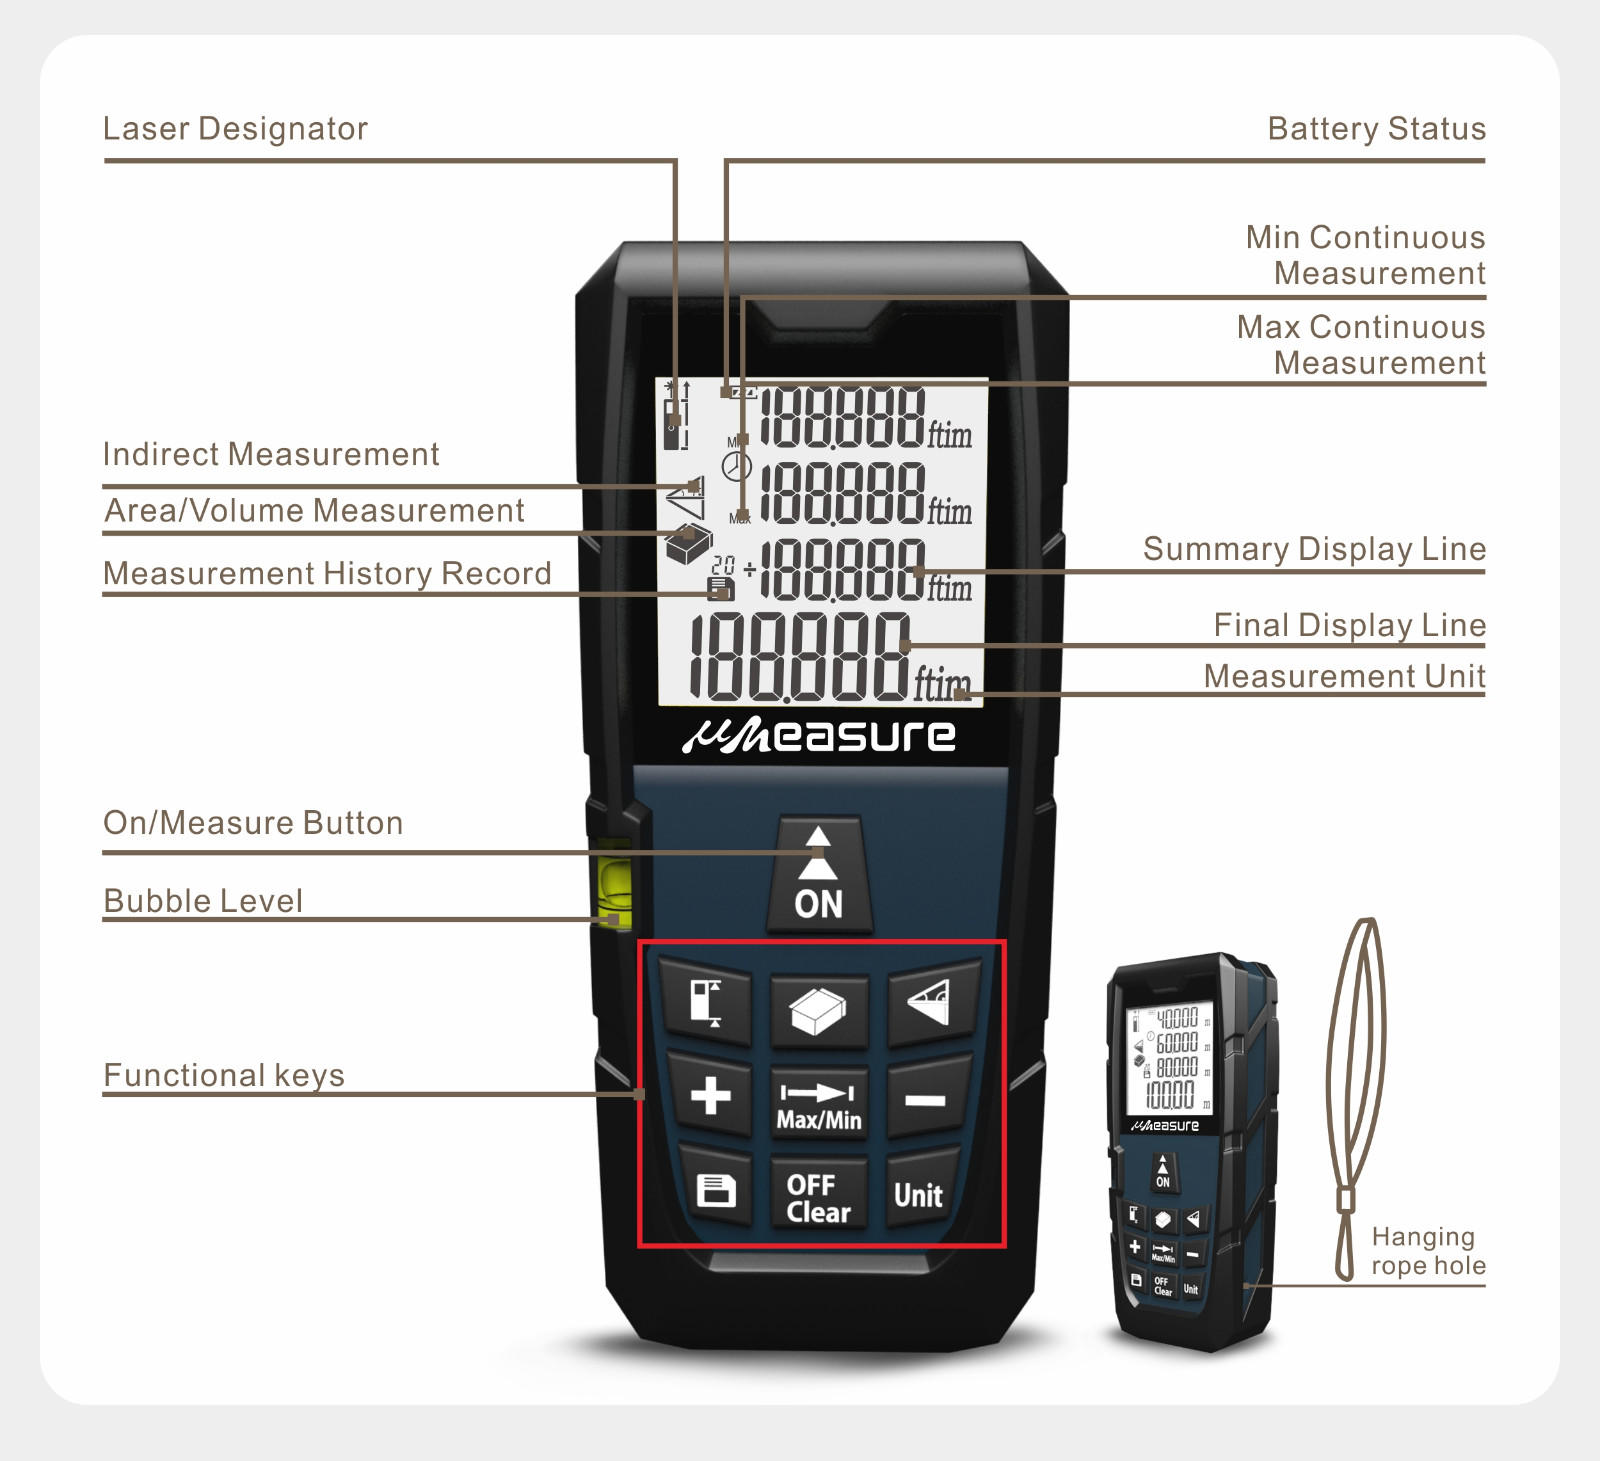 large laser measuring device manufacturers digital for worker UMeasure